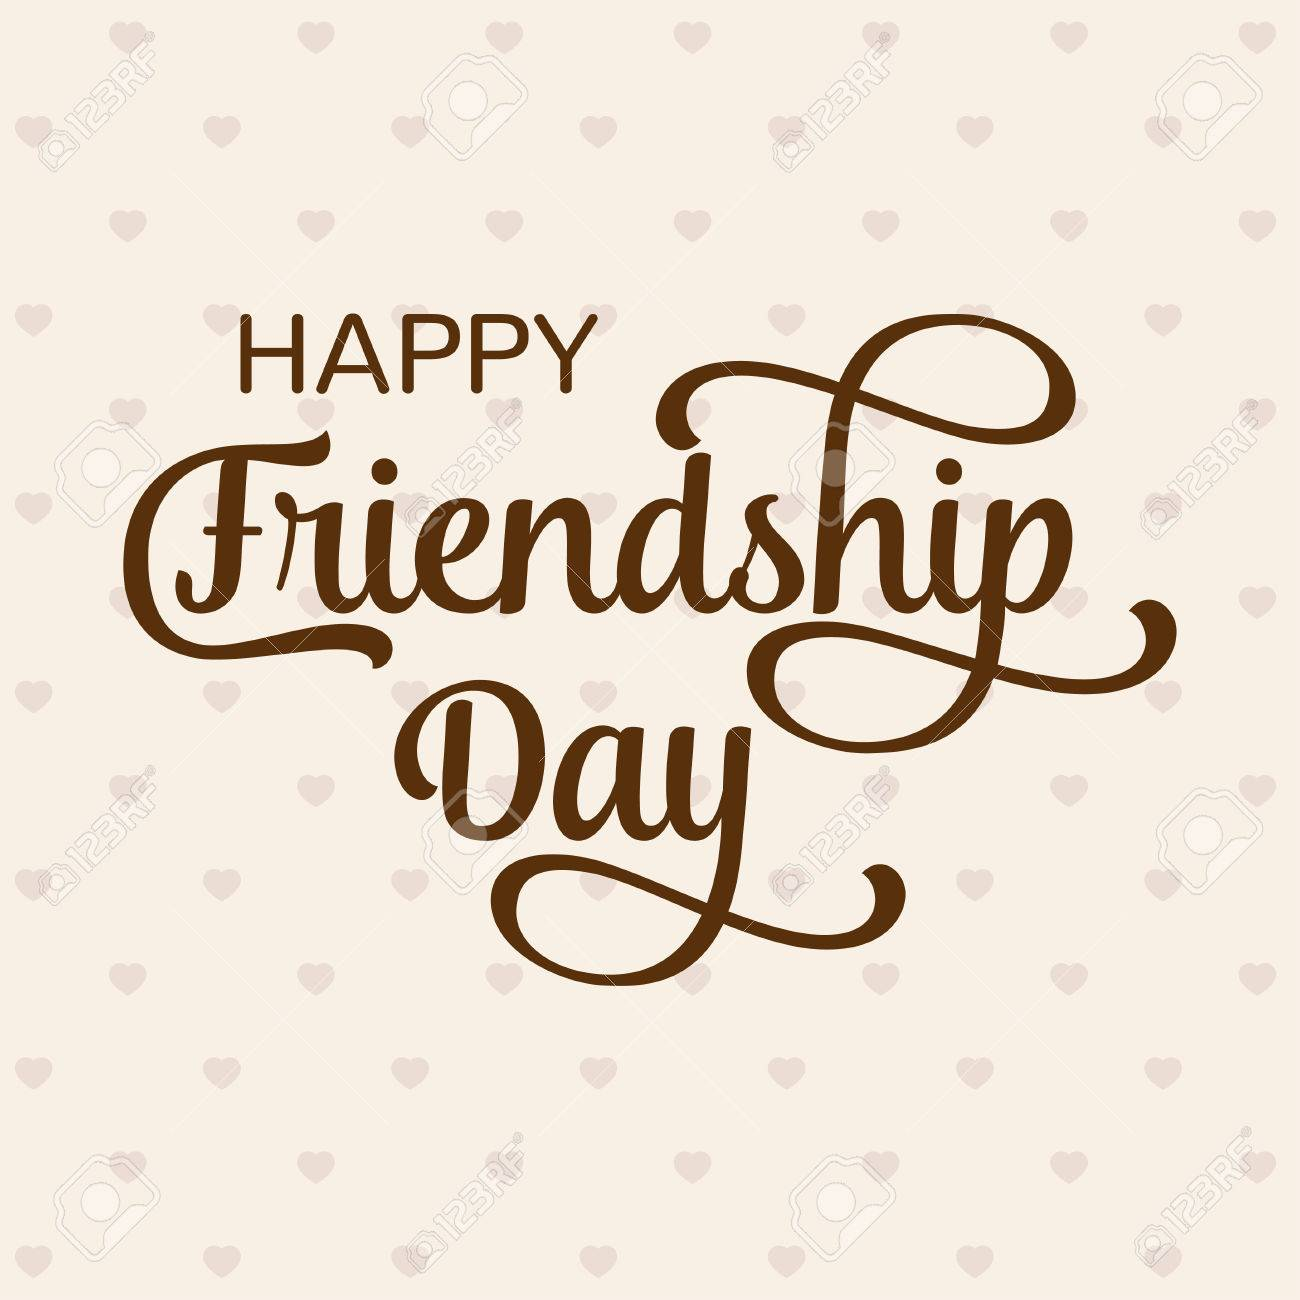 Happy Friendship Day Greeting Card For Poster Flyer Banner